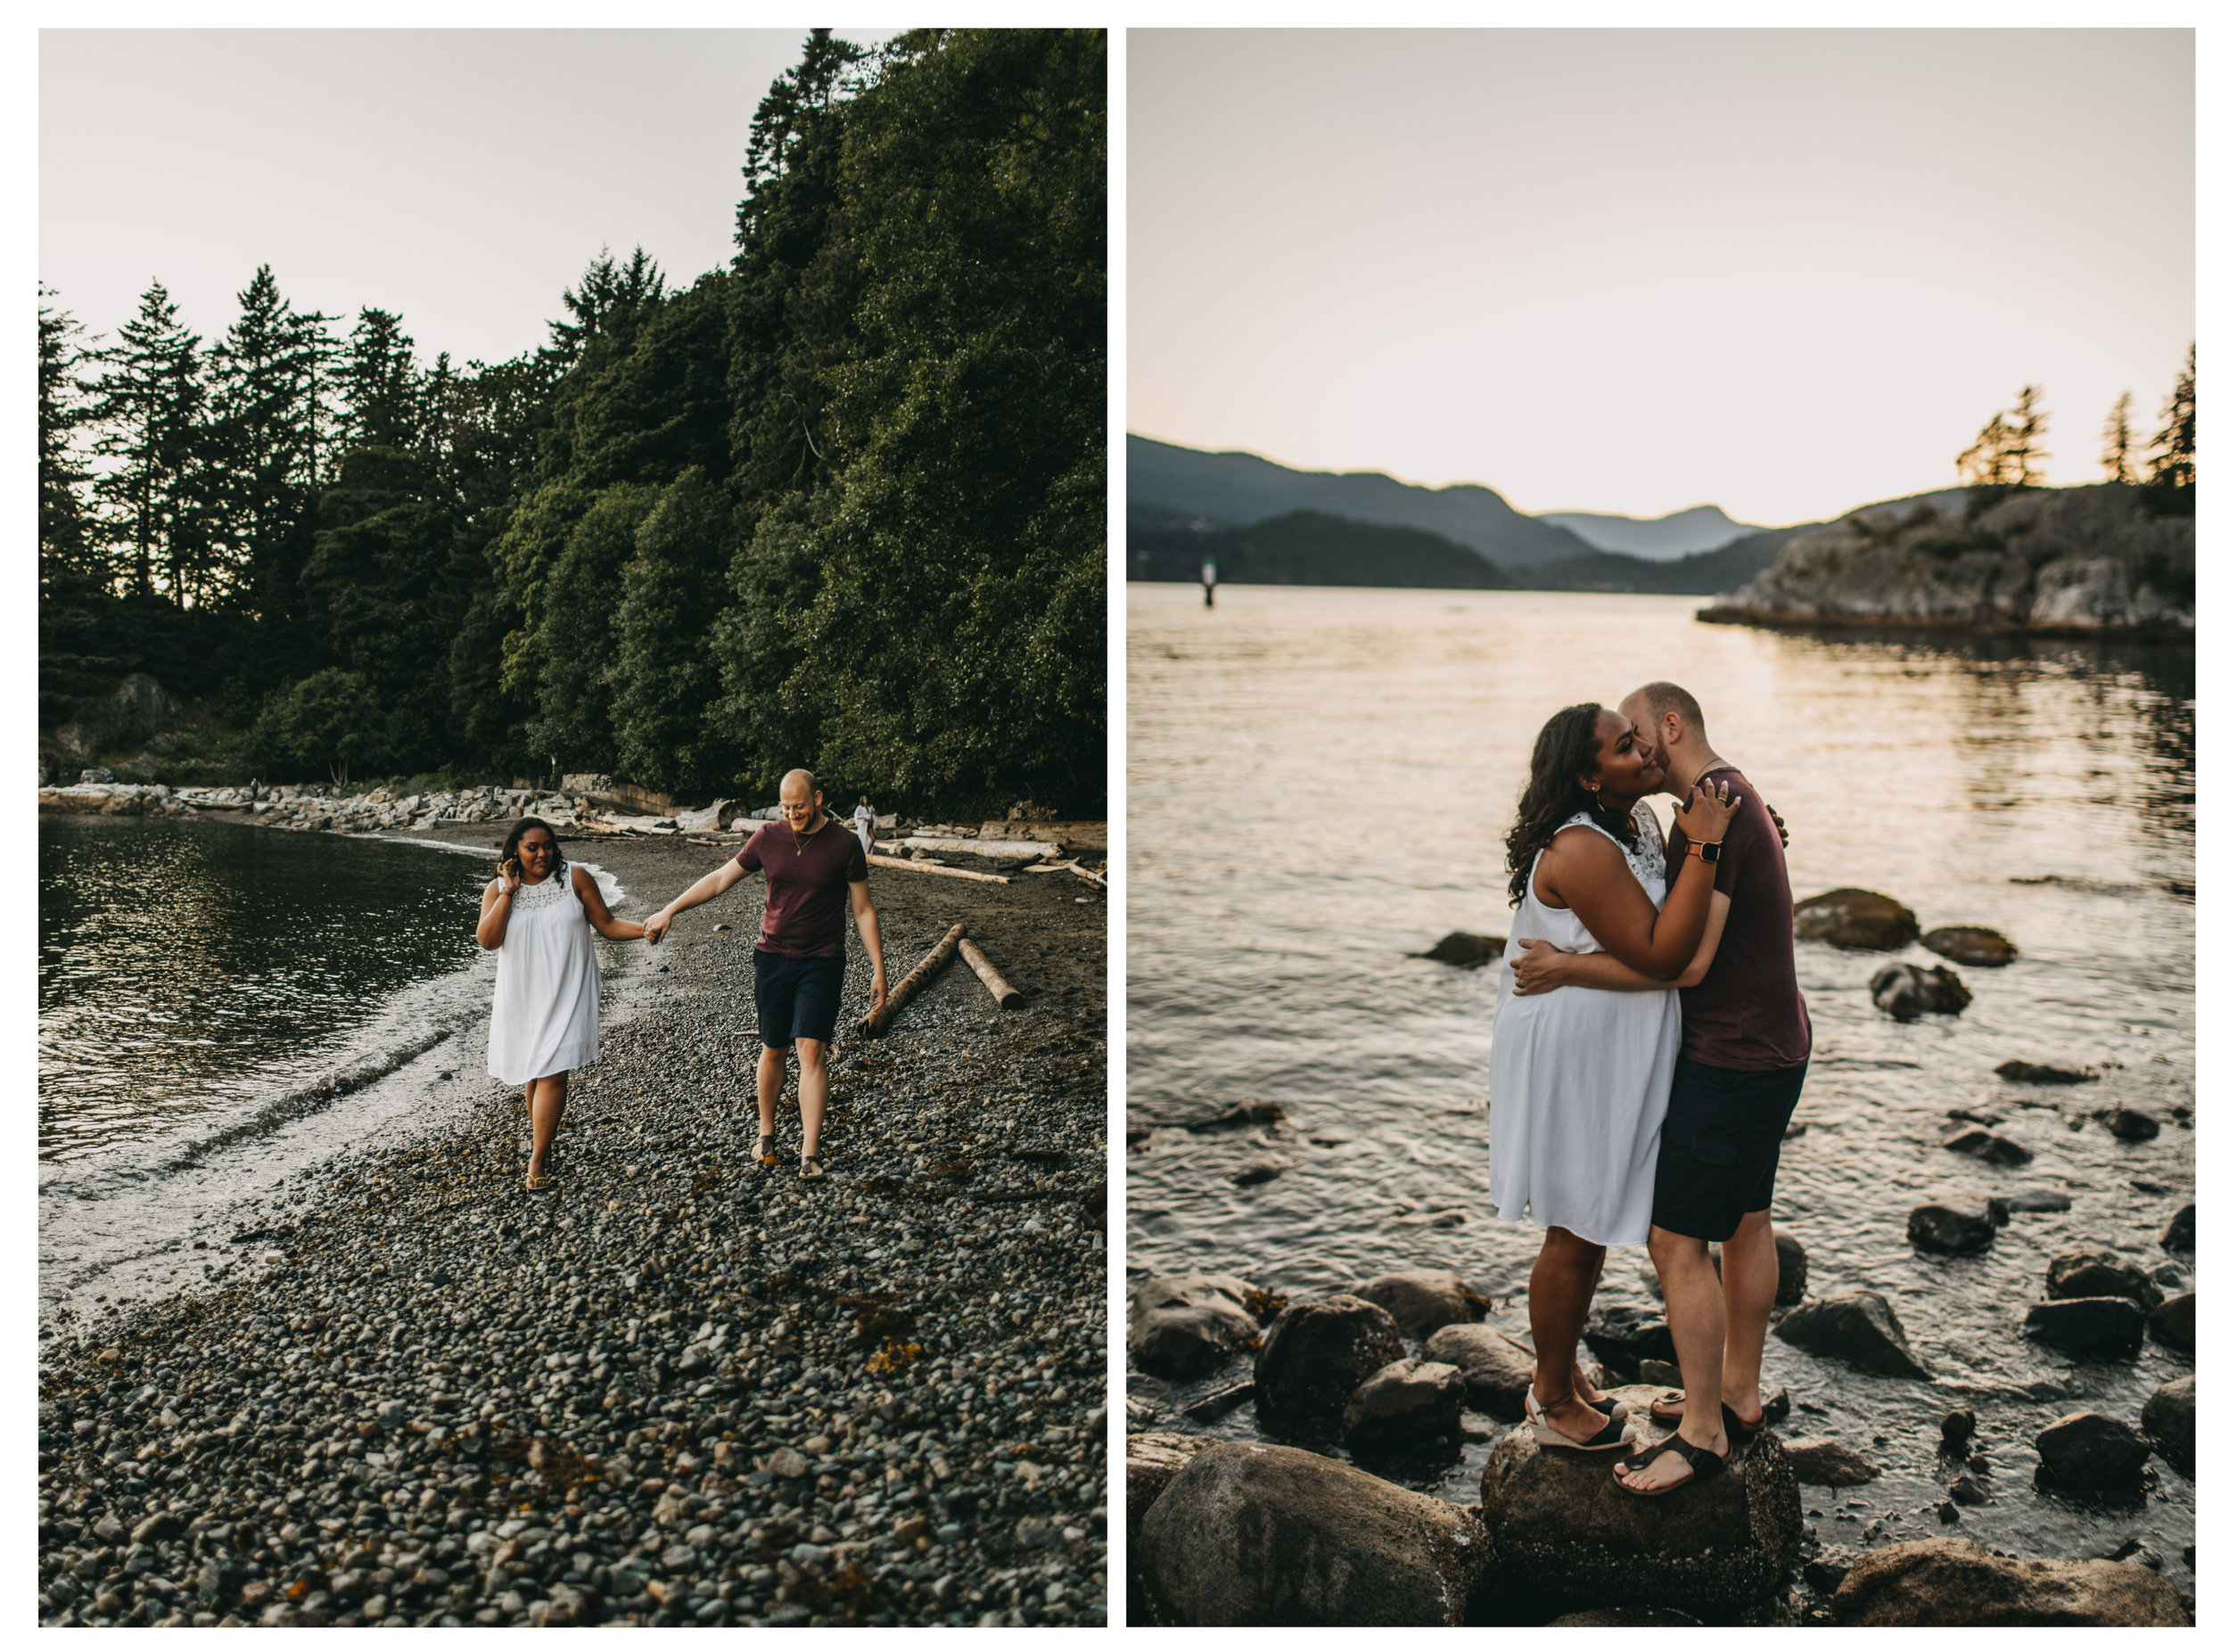 "<img src=""engagement.jpg"" alt=""engaged couple walking along the beach at sunset and hugging on rock"">"